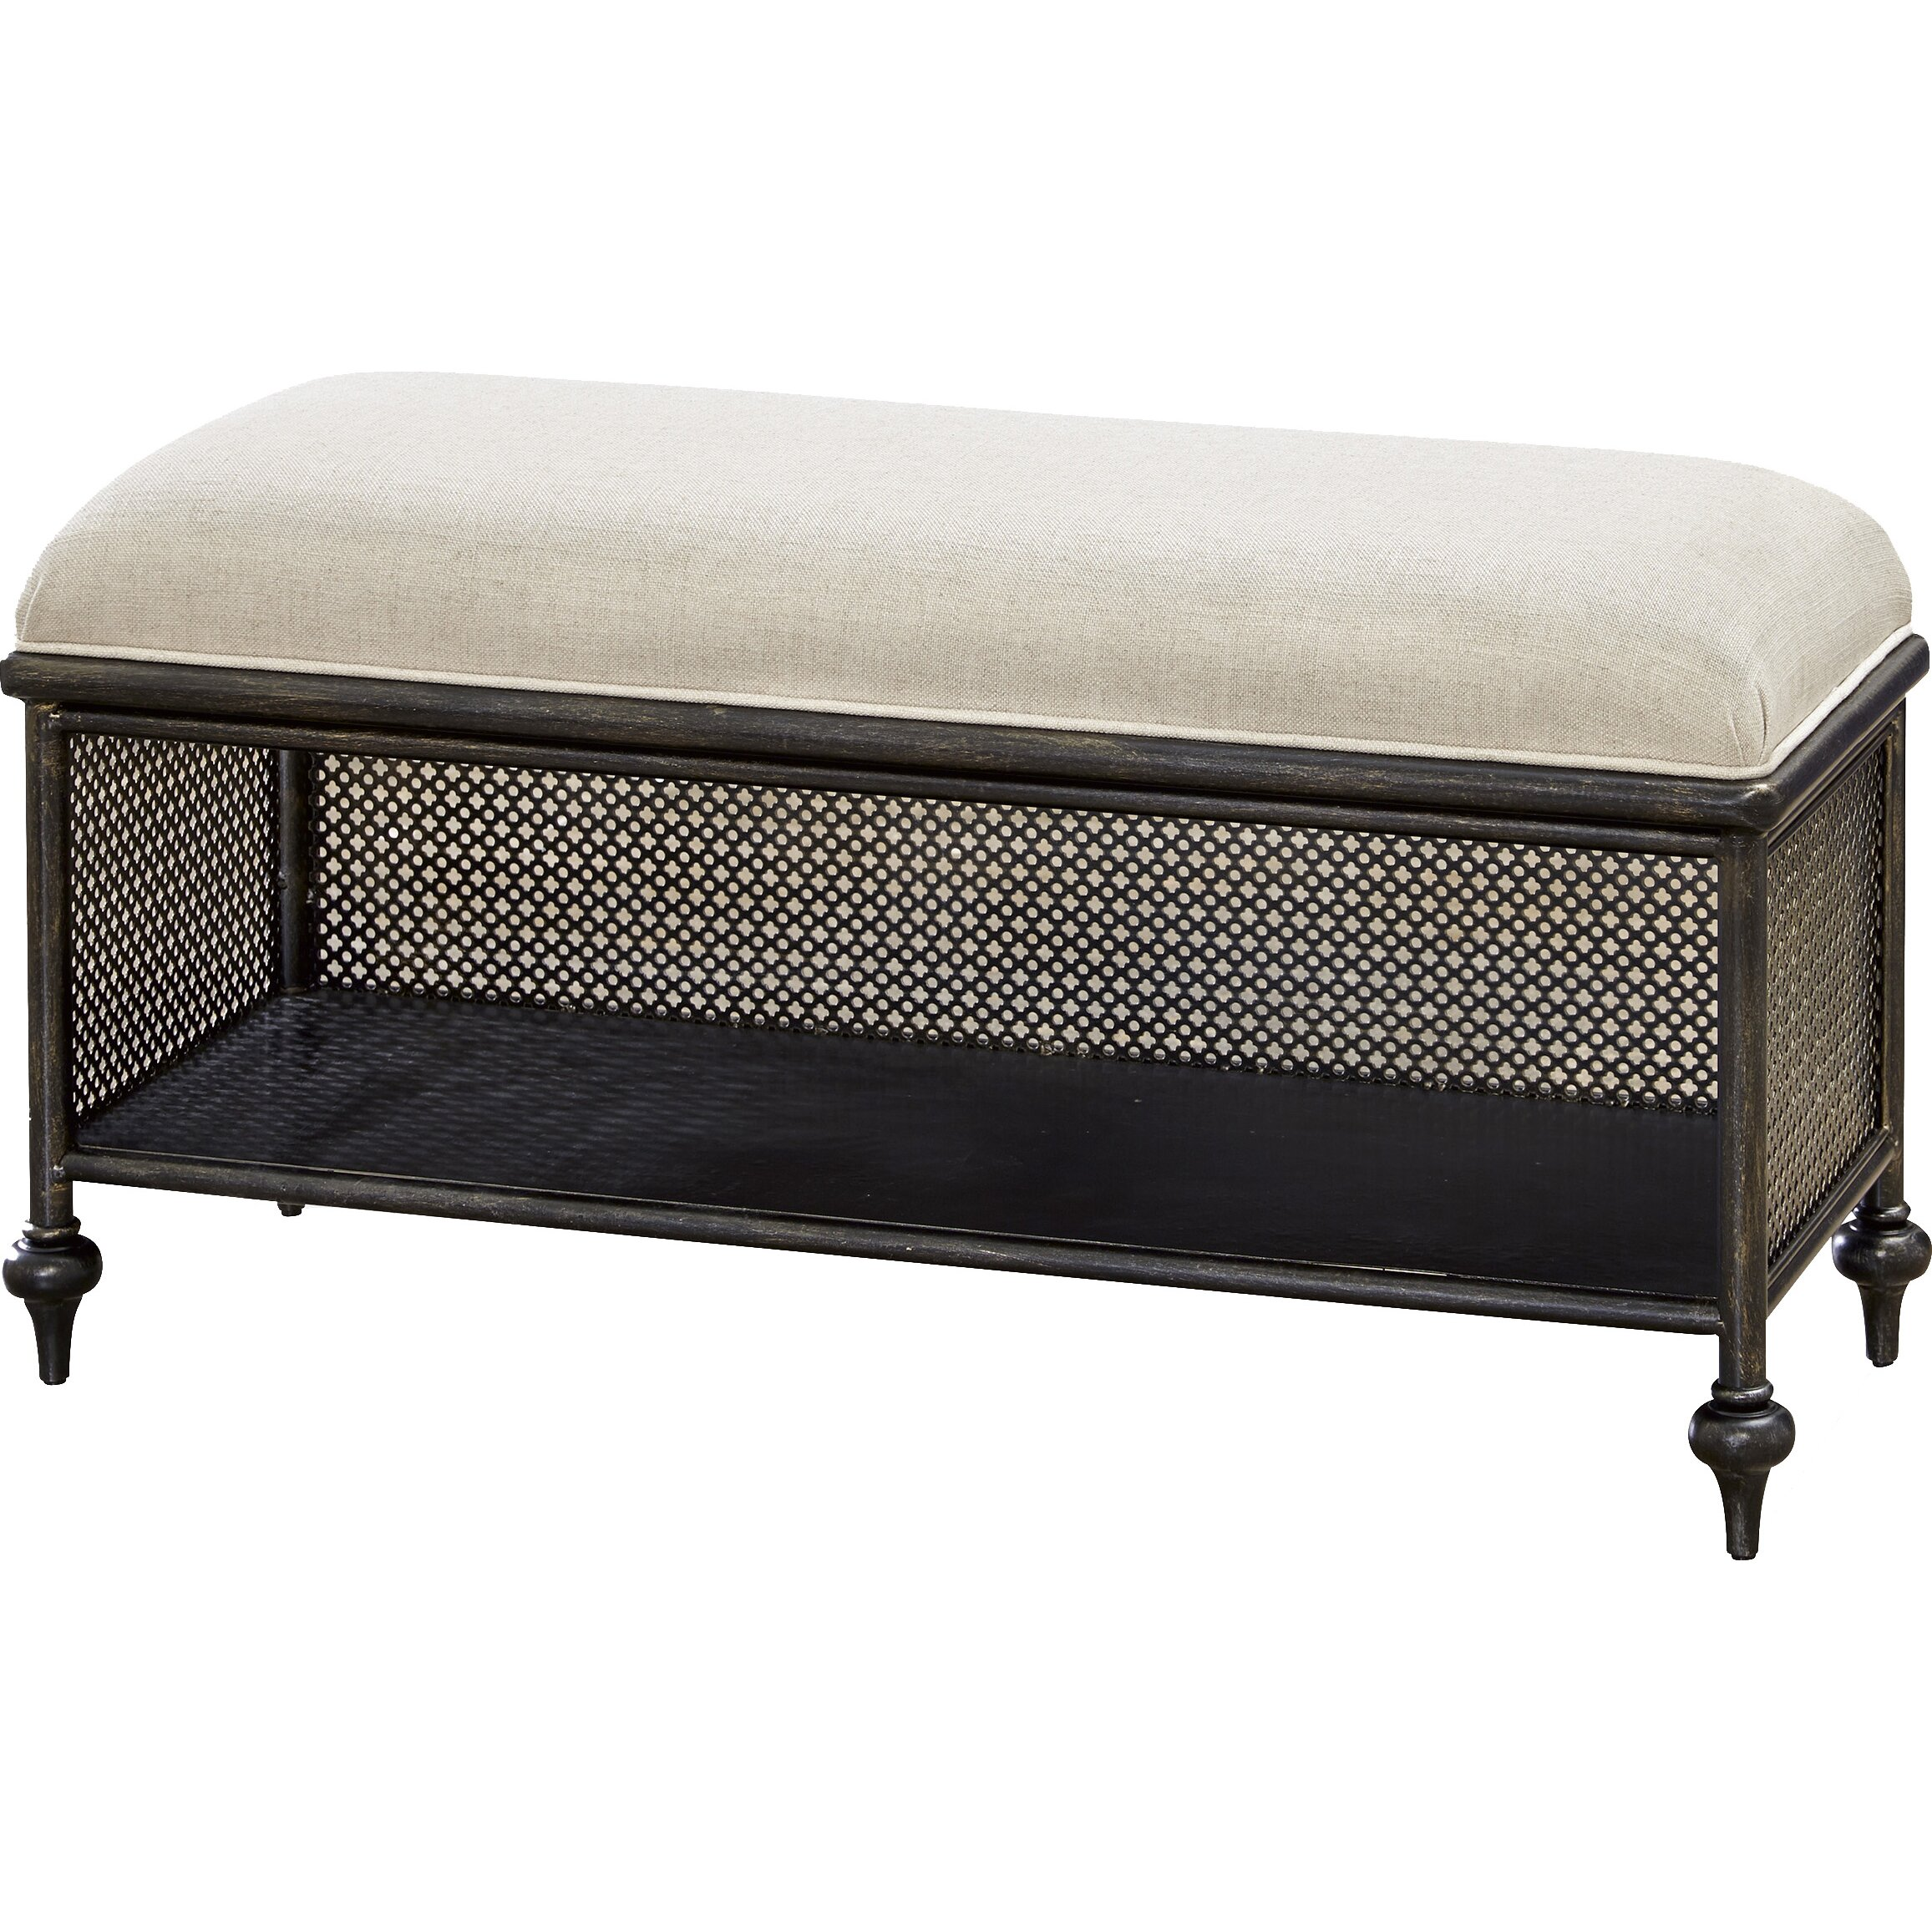 Smartstuff furniture penrose metal bedroom bench wayfair - Benches for bedrooms ...